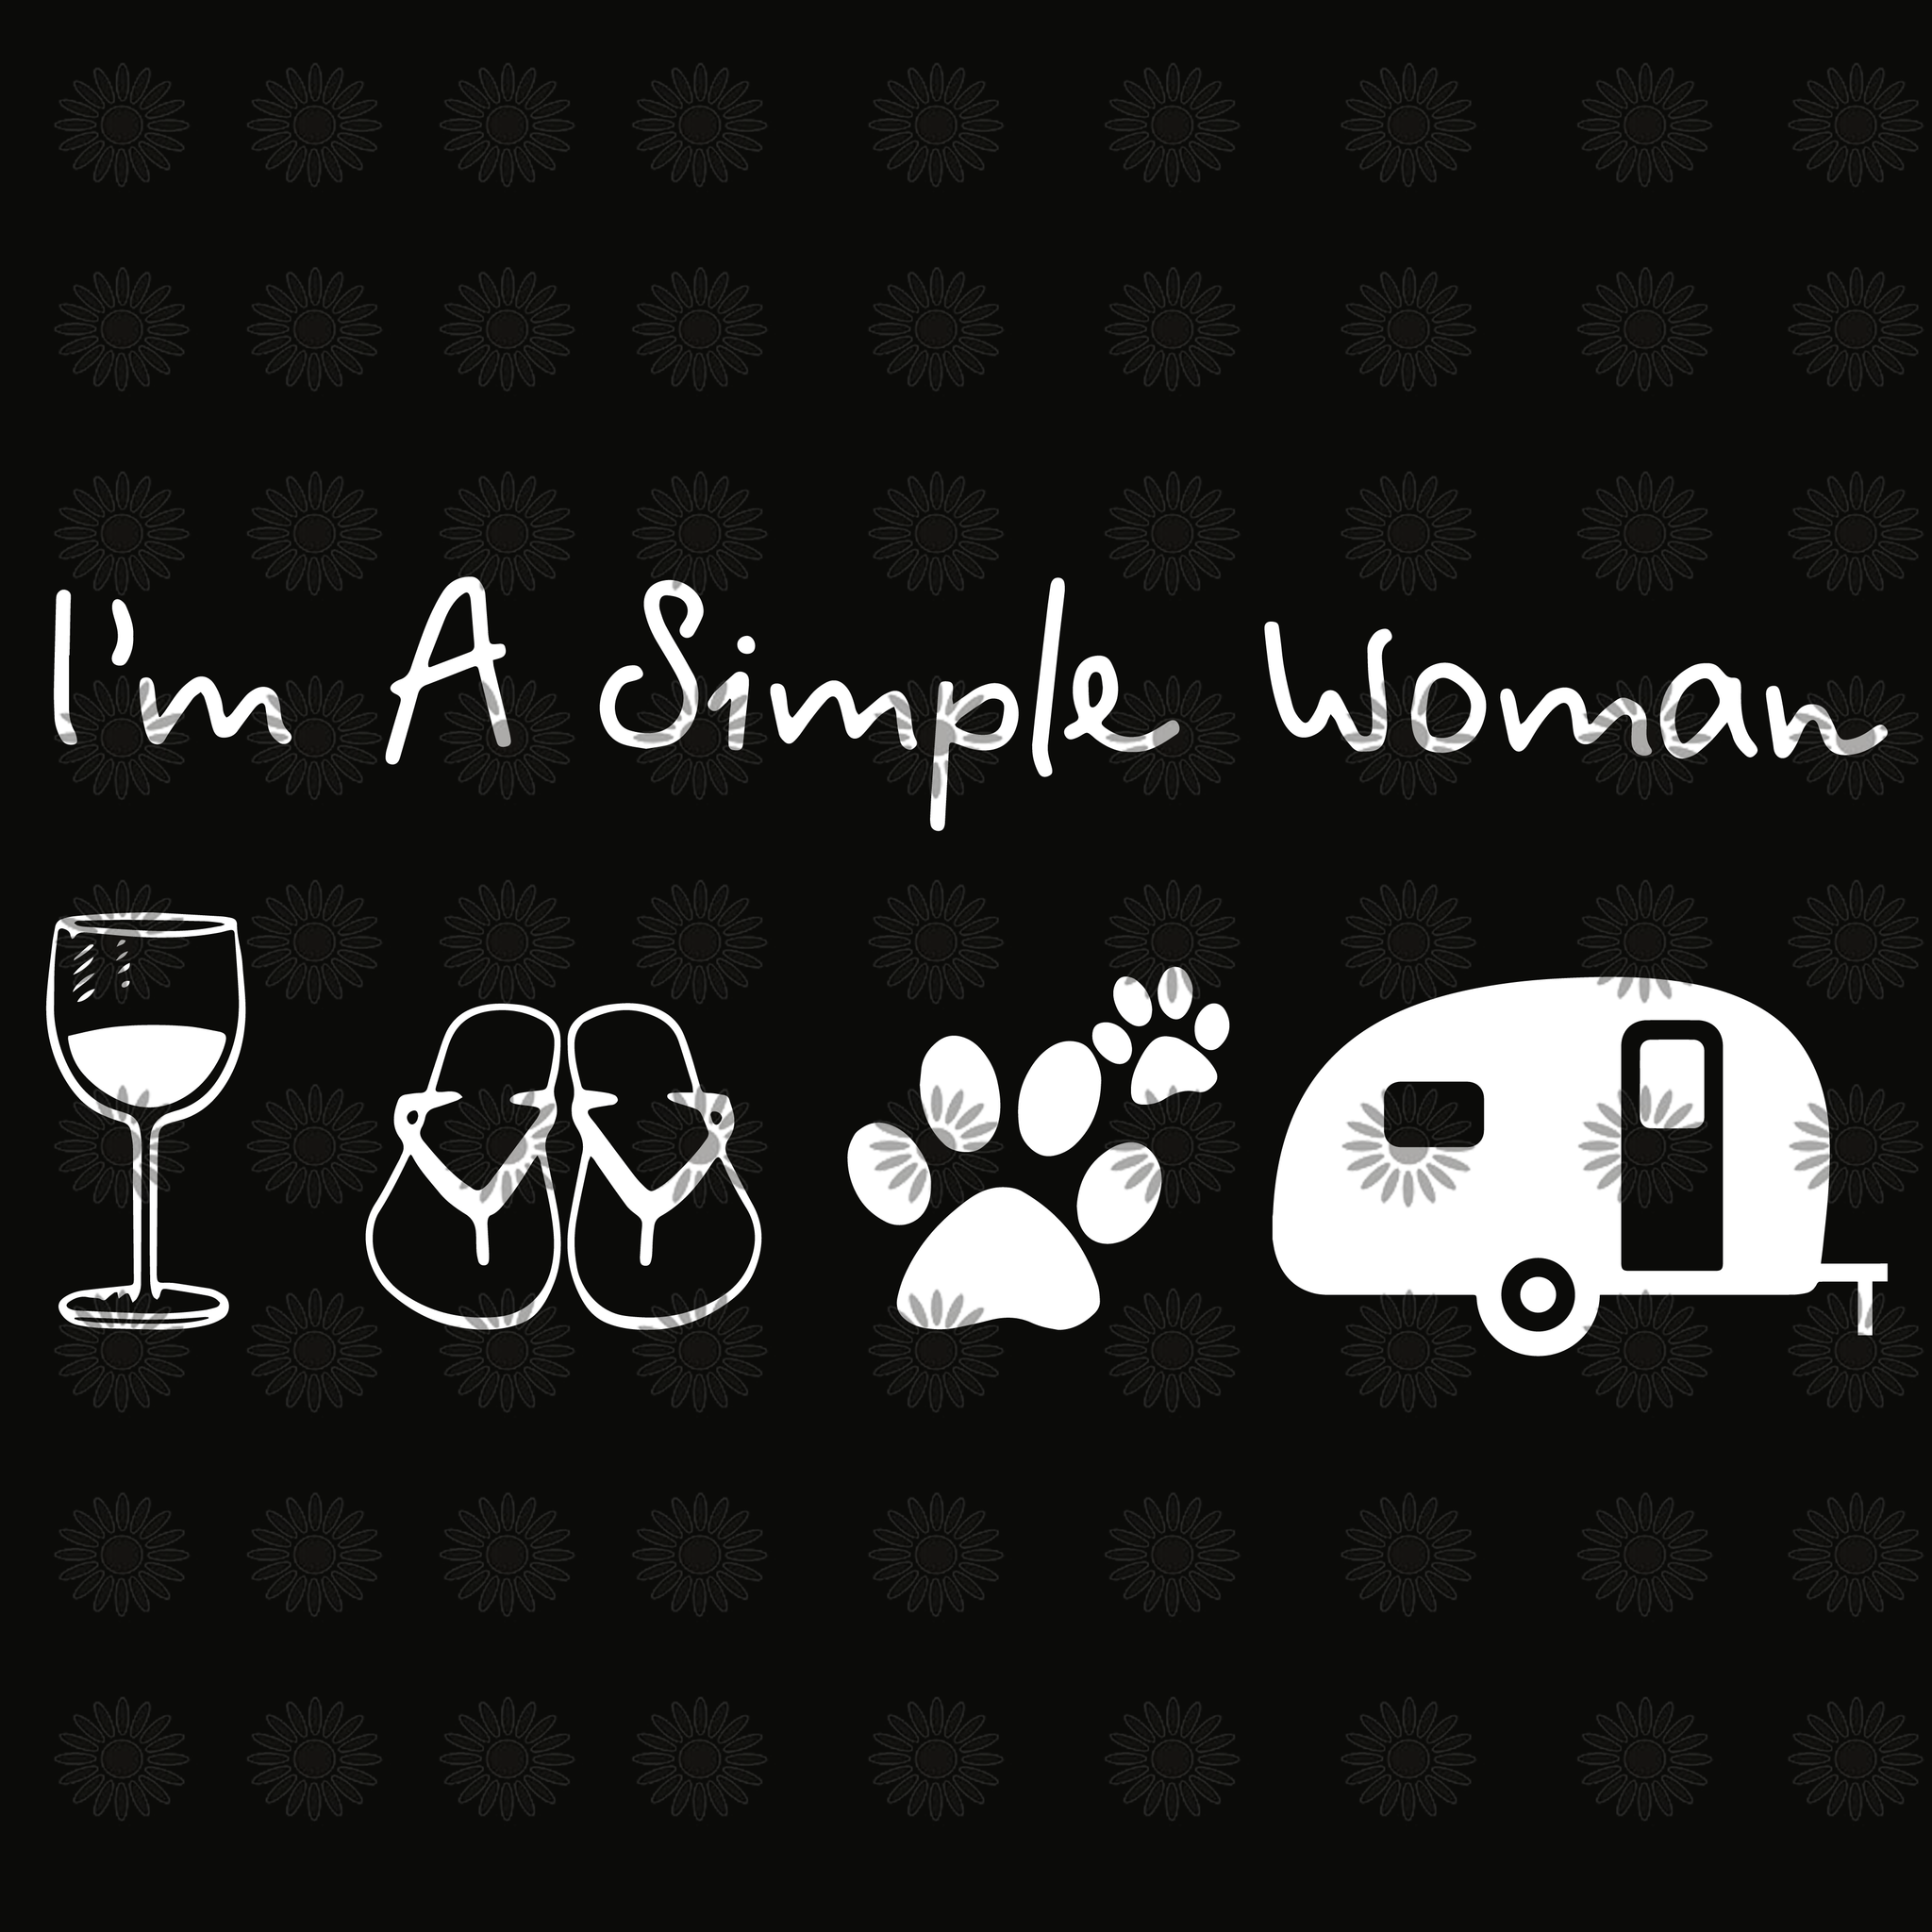 I'm a simple woman svg, I'm a simple woman, I'm a simple woman  png, simple woman svg, simple woman png, woman svg, eps, dxf, png